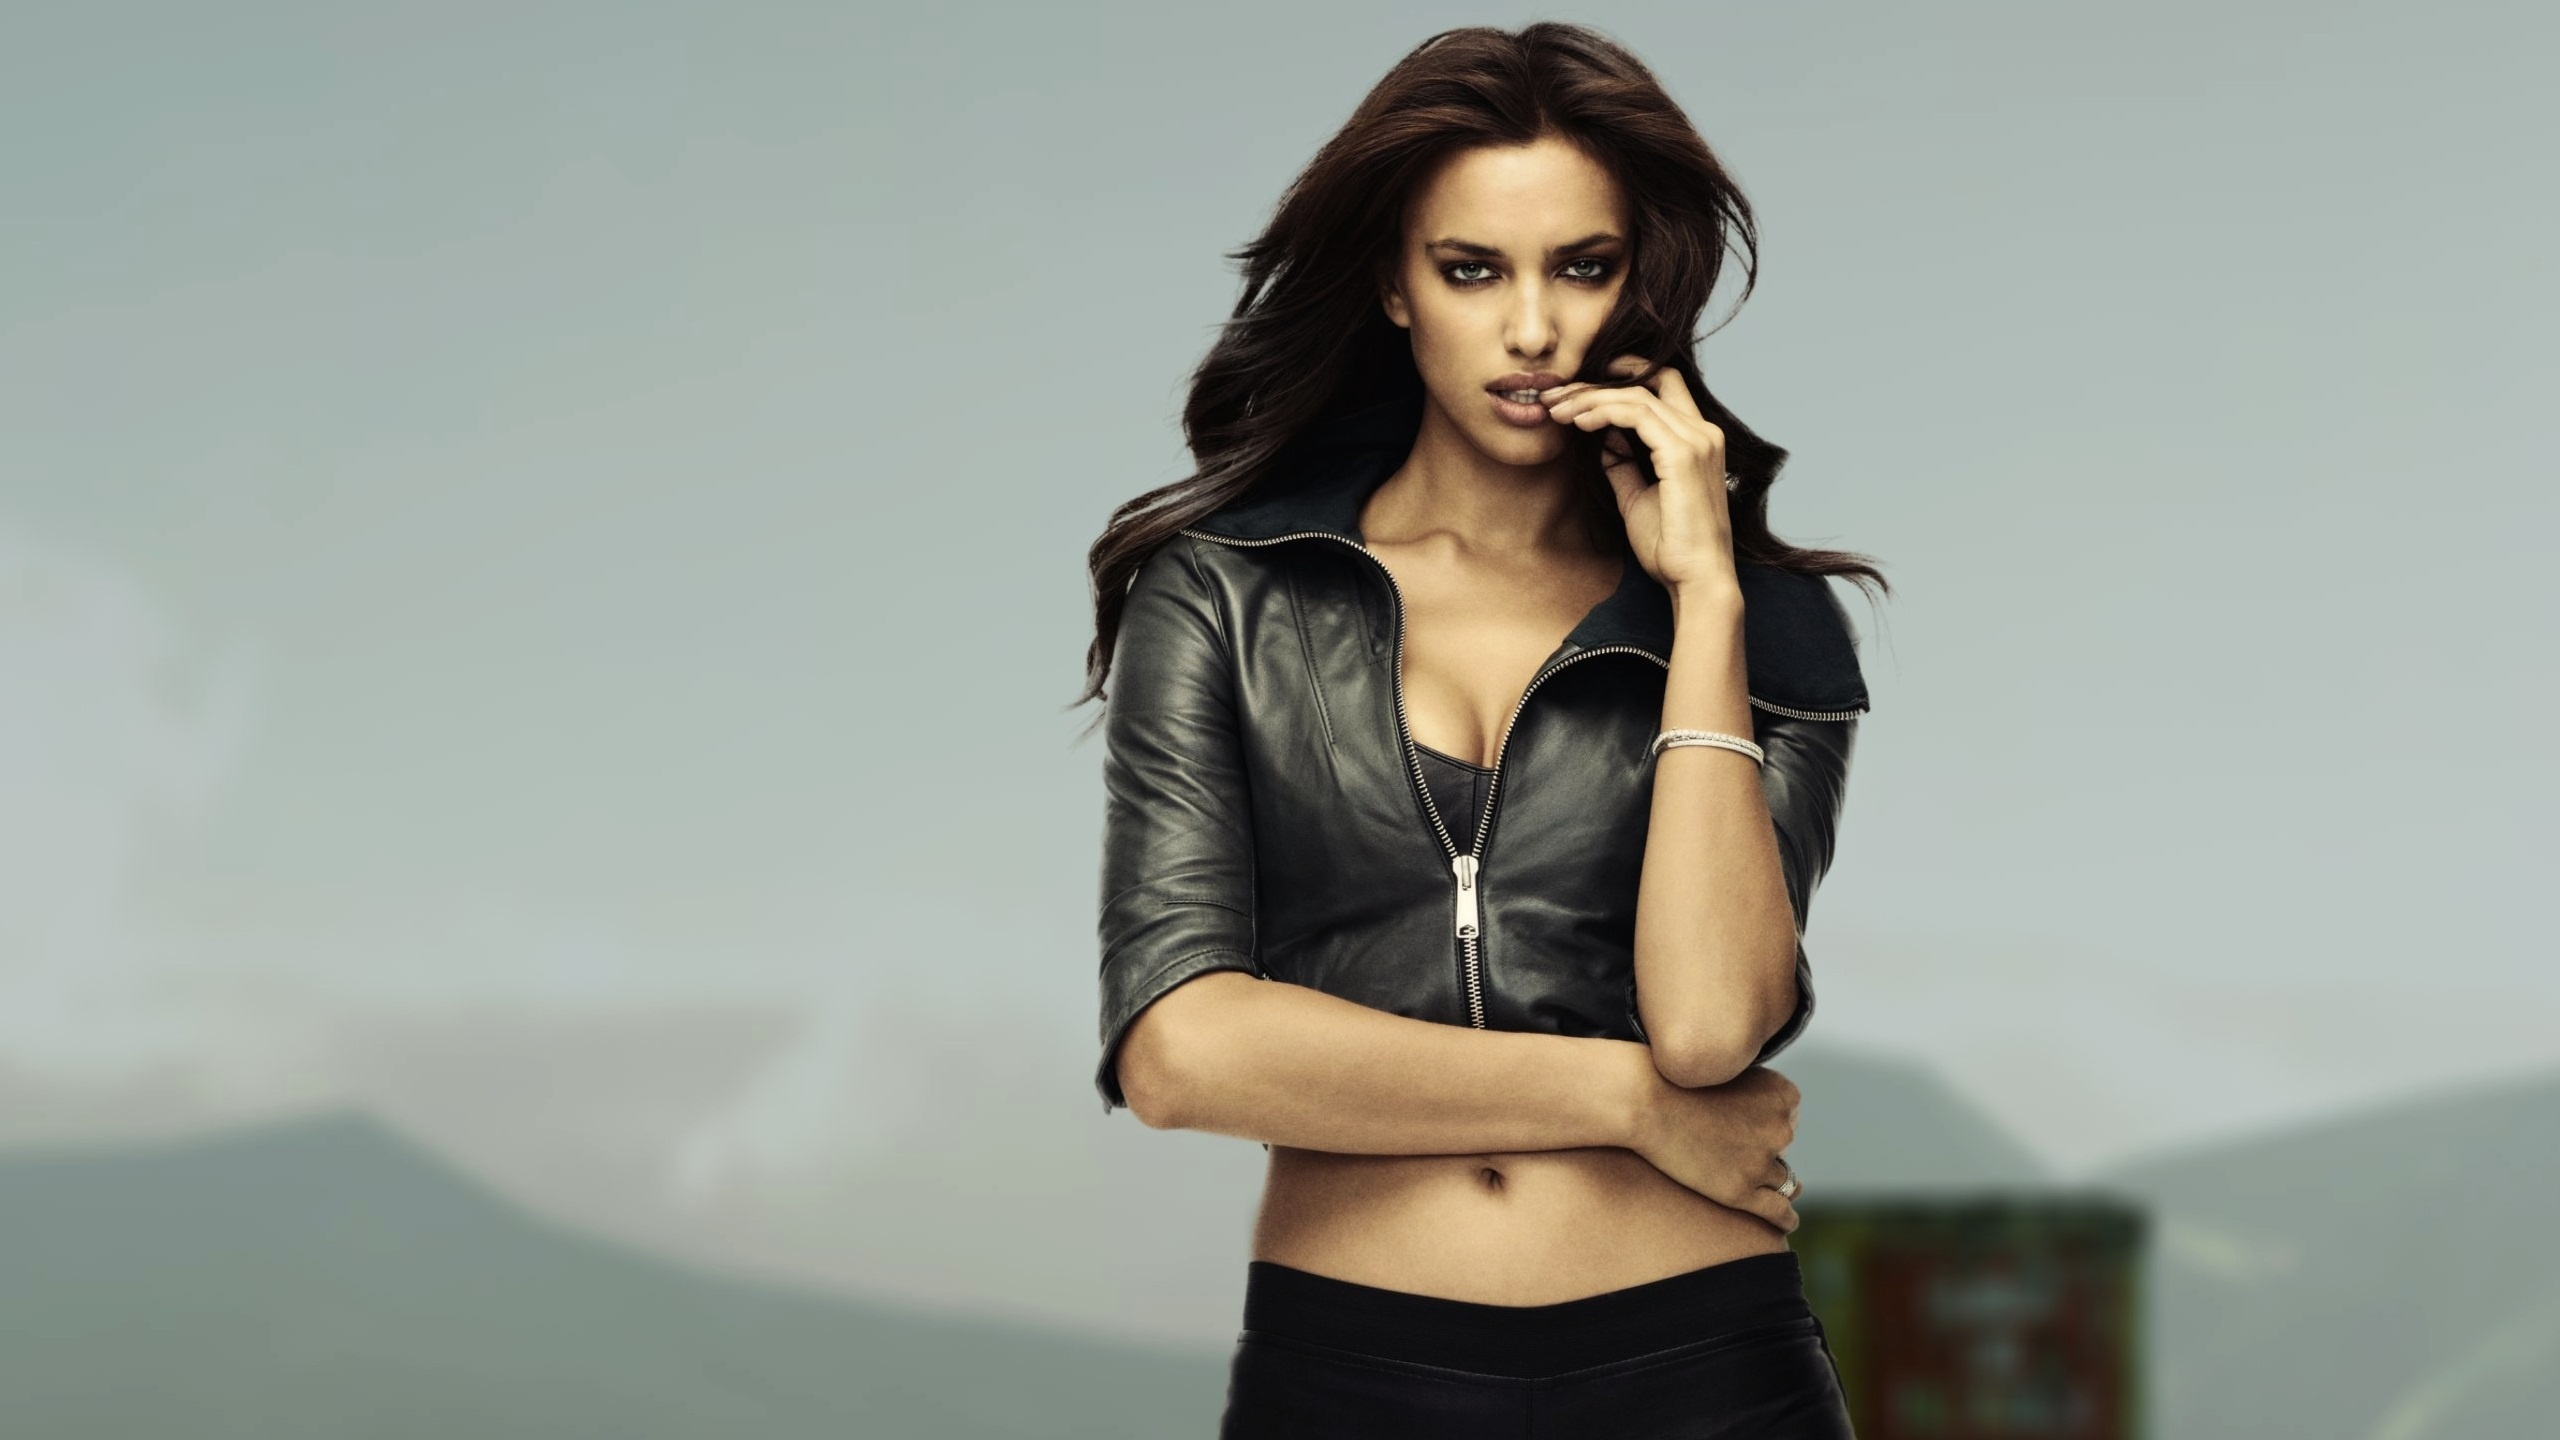 Irina Shayk For NFS The Run Wallpapers